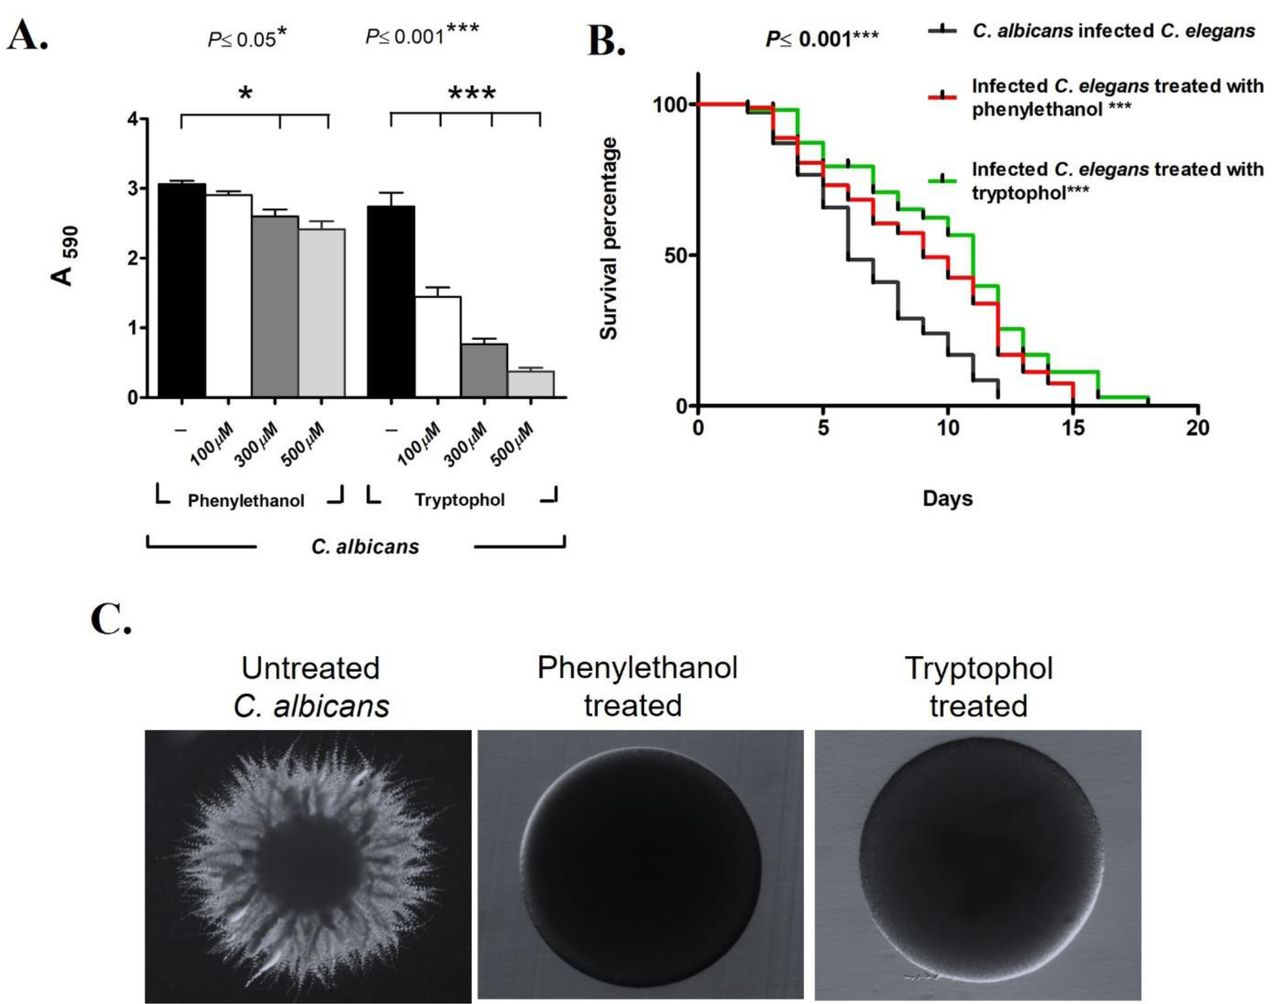 Phenylethanol and tryptophol are sufficient for beneficial activity in vitro and in vivo. (A) Varying concentration (100, 300 and 500 μM) of commercially procured aromatic alcohols, phenylethanol and tryptophol were exposed to C. albicans and biomass was measured with crystal violet (n = 5 experimental replicates). (B) Life span of C. elegans infected with C. albicans treated tryptophol (100 μM) (green curve) and phenylethanol (100 μM) (red curve) (n =3 experimental replicates, 82 ± 28 nematodes). (C) Representative images showing filamentation of C. albicans , upon phenylethanol and tryptophol treatment. Error bars represents means± standard deviations (SD). Kaplan-Meier statistical analysis tools by Log-rank (Mantel-Cox) tests were used for the C. elegans survival assay.